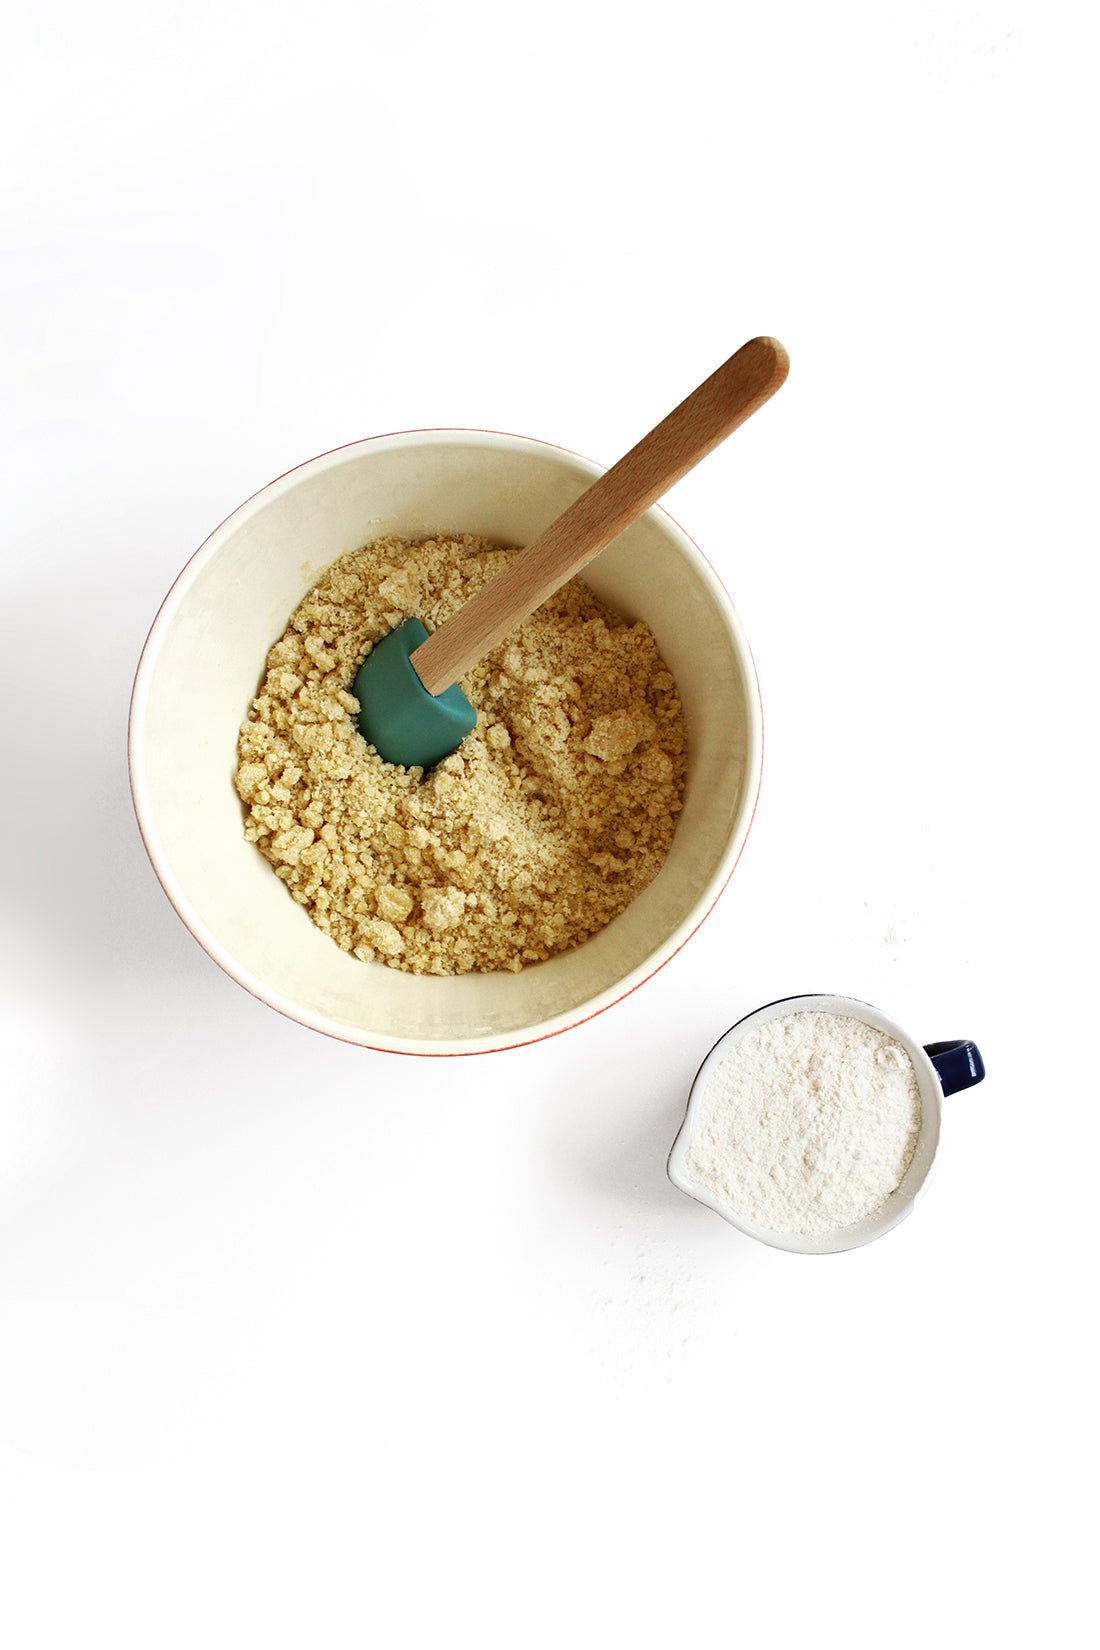 Image from above of Miss Jones Baking Co Salt + Pepper Shortbread batter in a mixing bowl